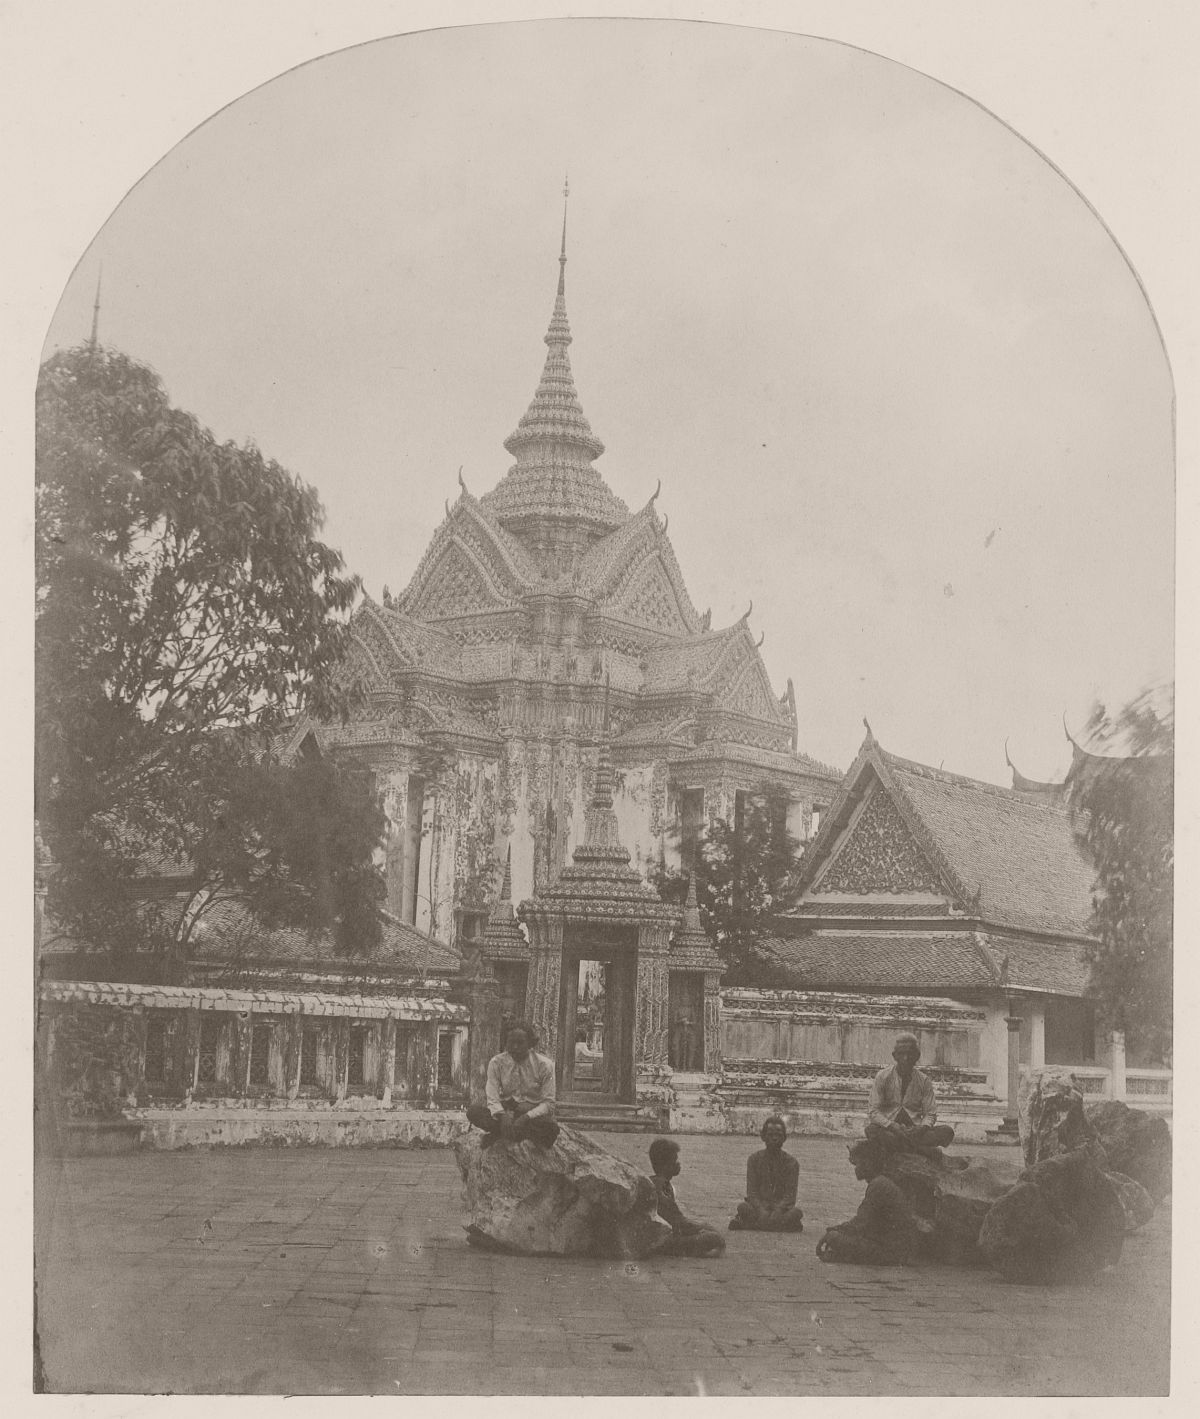 Temple (Wat Po) in the palace (Dusit Maha Prasat) of the first king of Siam in Bangkok, 1862.